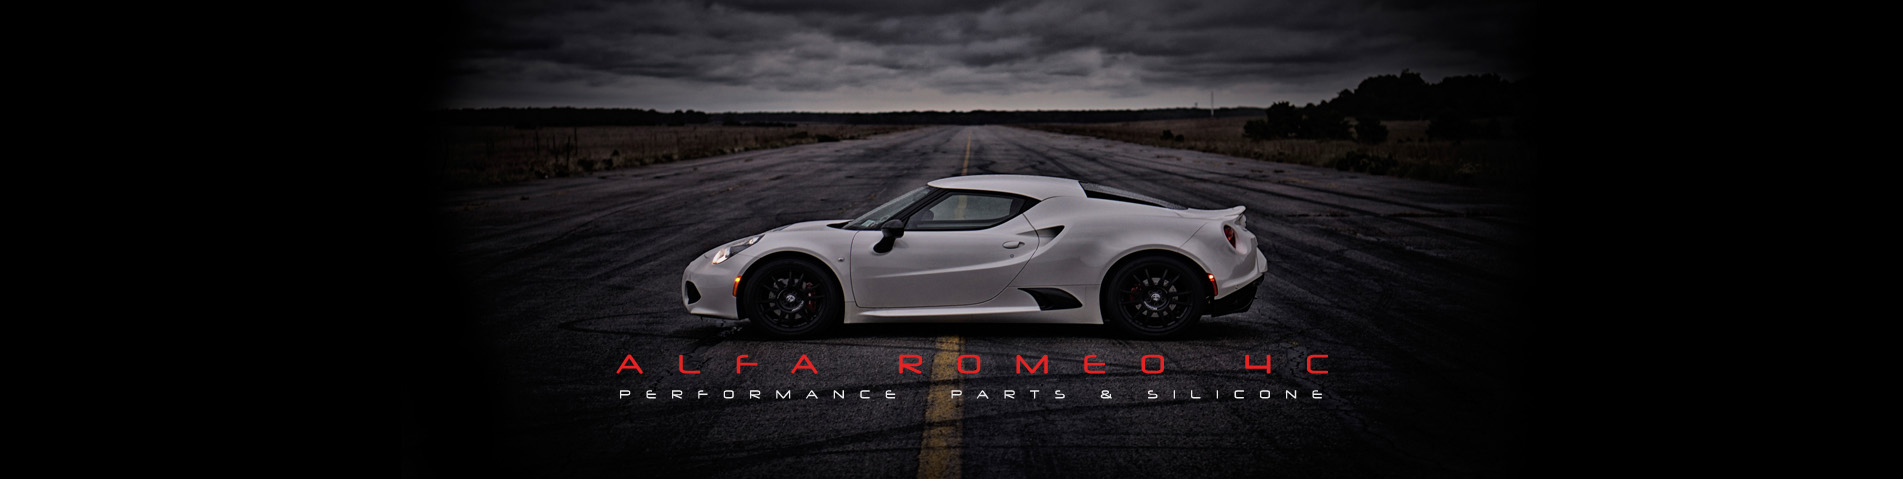 ALFA ROMEO 4C Performance Parts